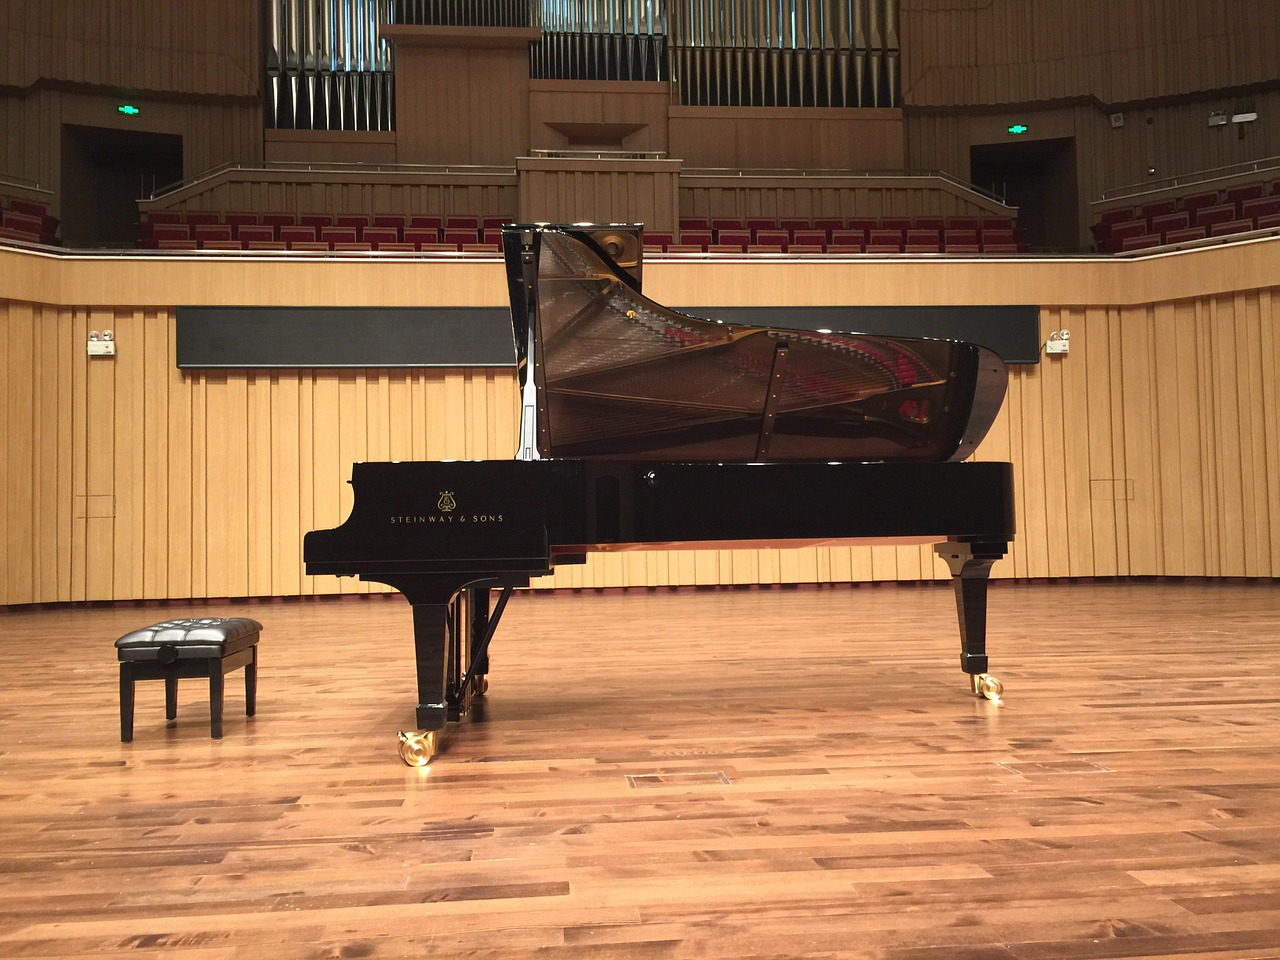 Piano in concert hall Picture of: kailingpiano from Pixabay